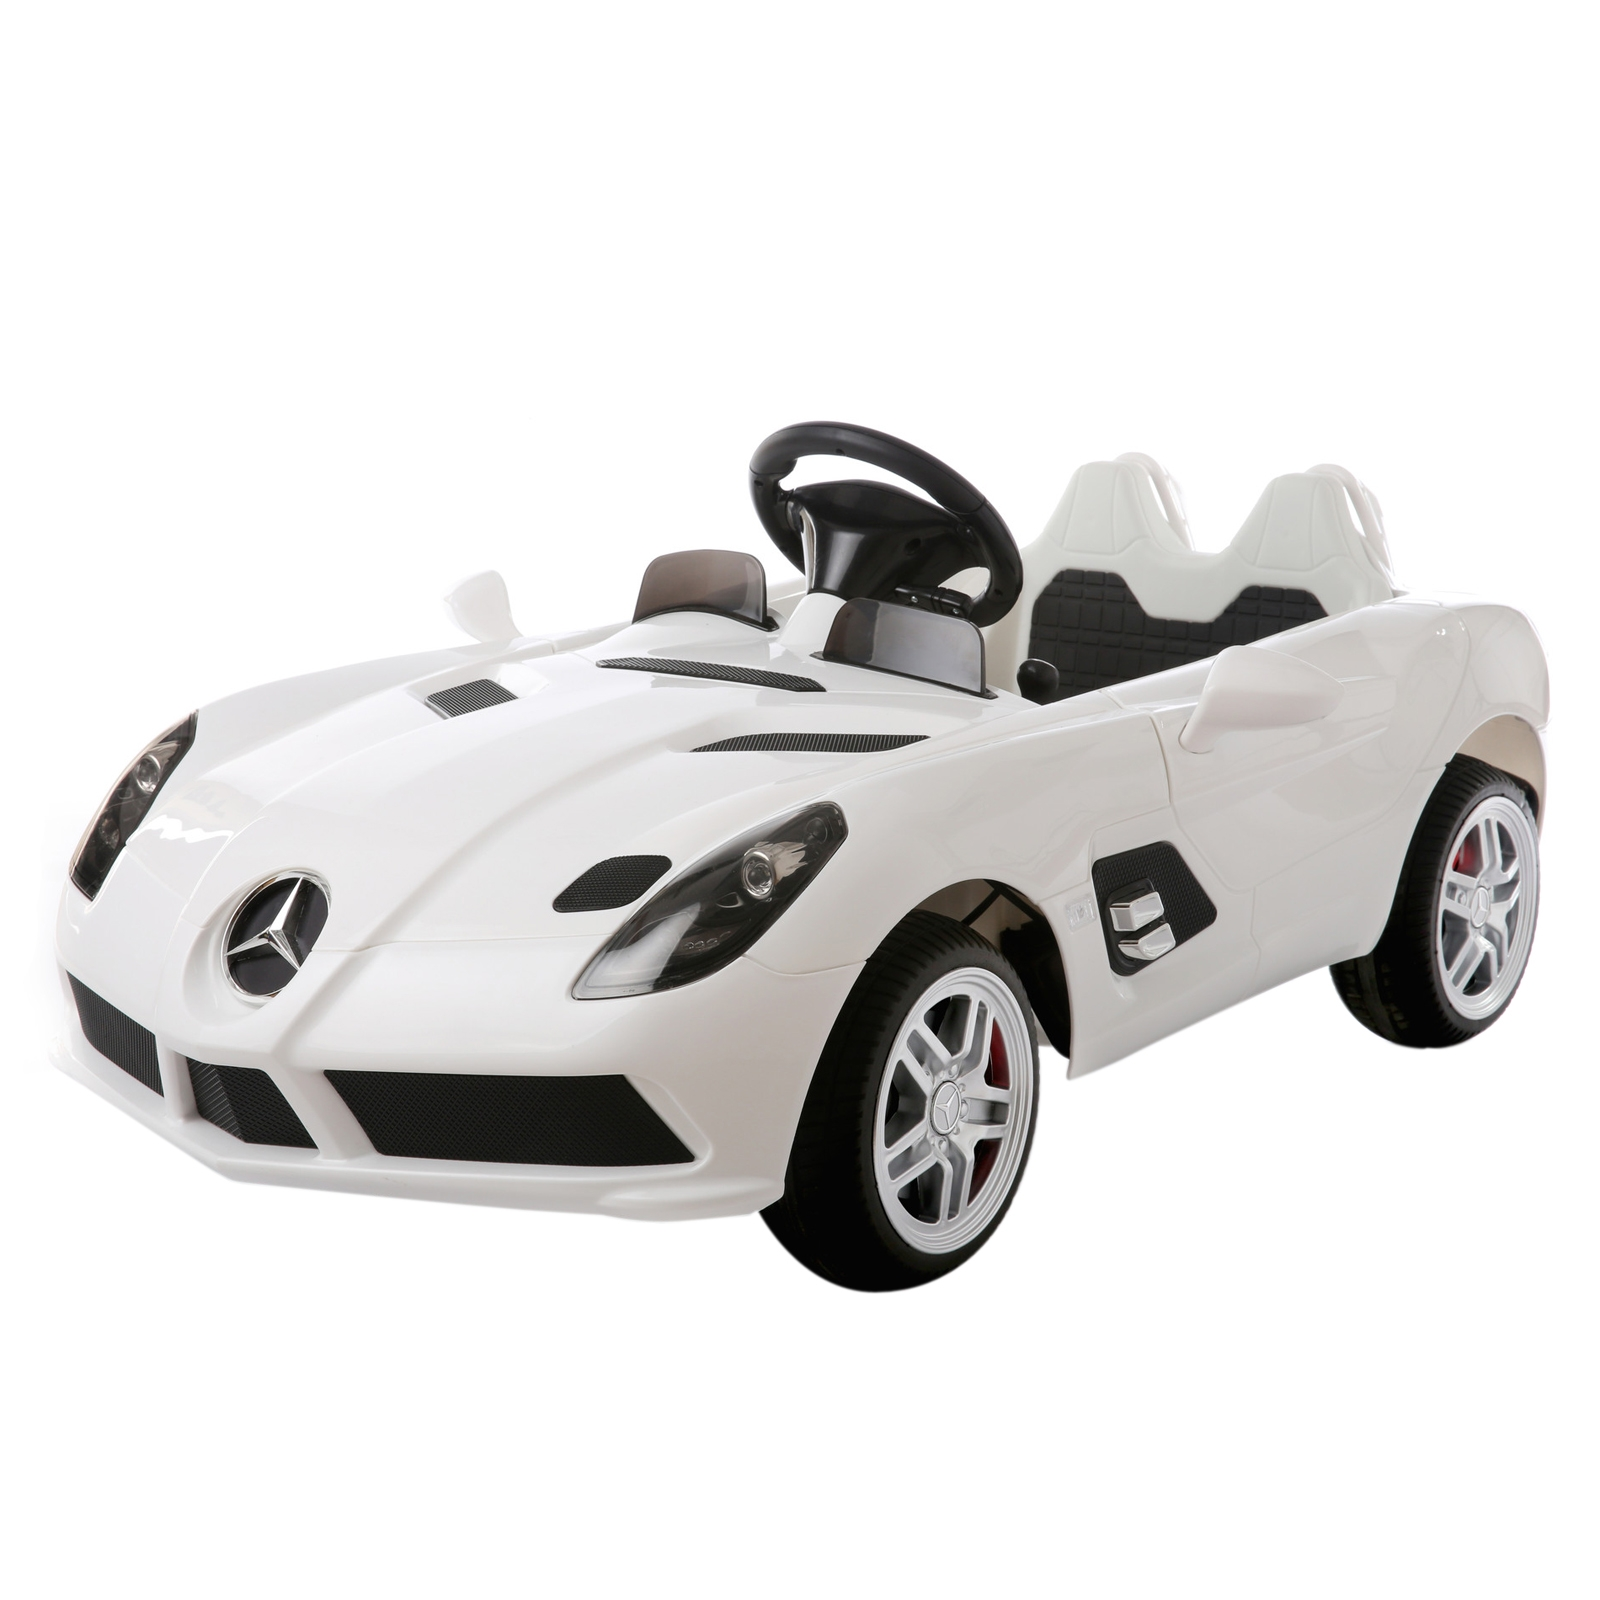 12V Mercedes Benz SLR Officially Licsensed Ride On - White